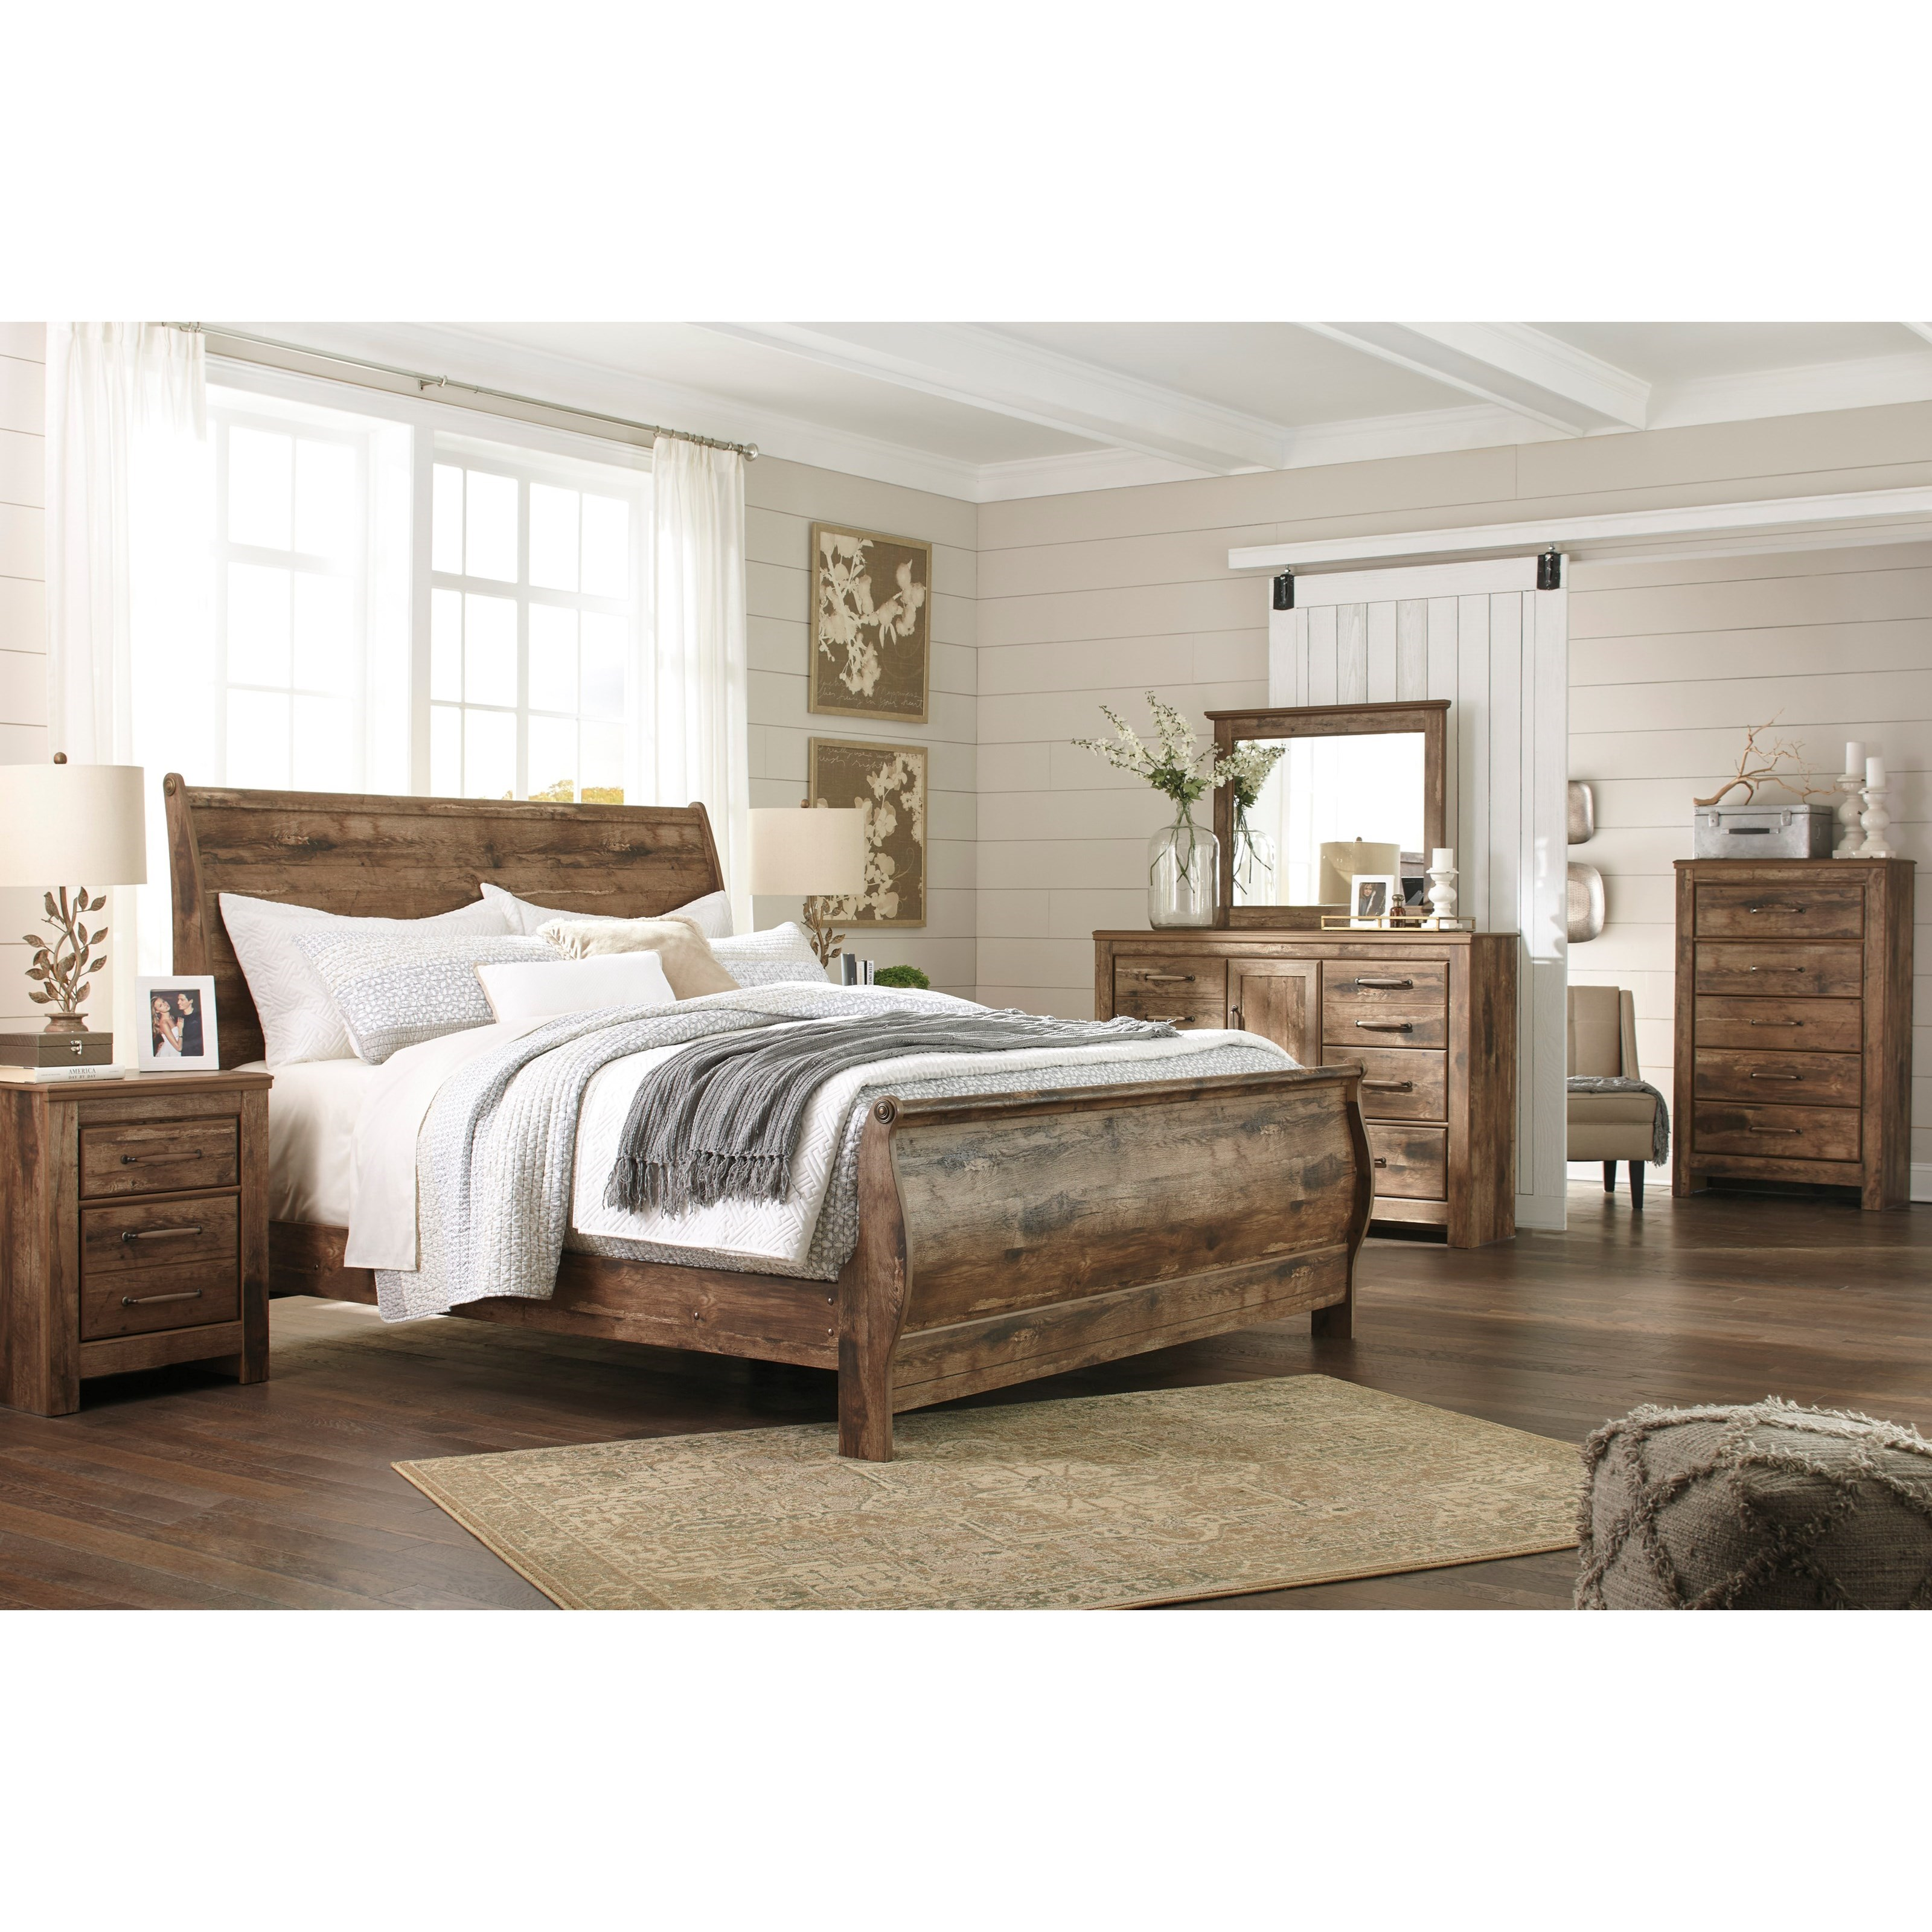 Signature Design By Ashley Blaneville King Bedroom Group Value City Furniture Bedroom Groups